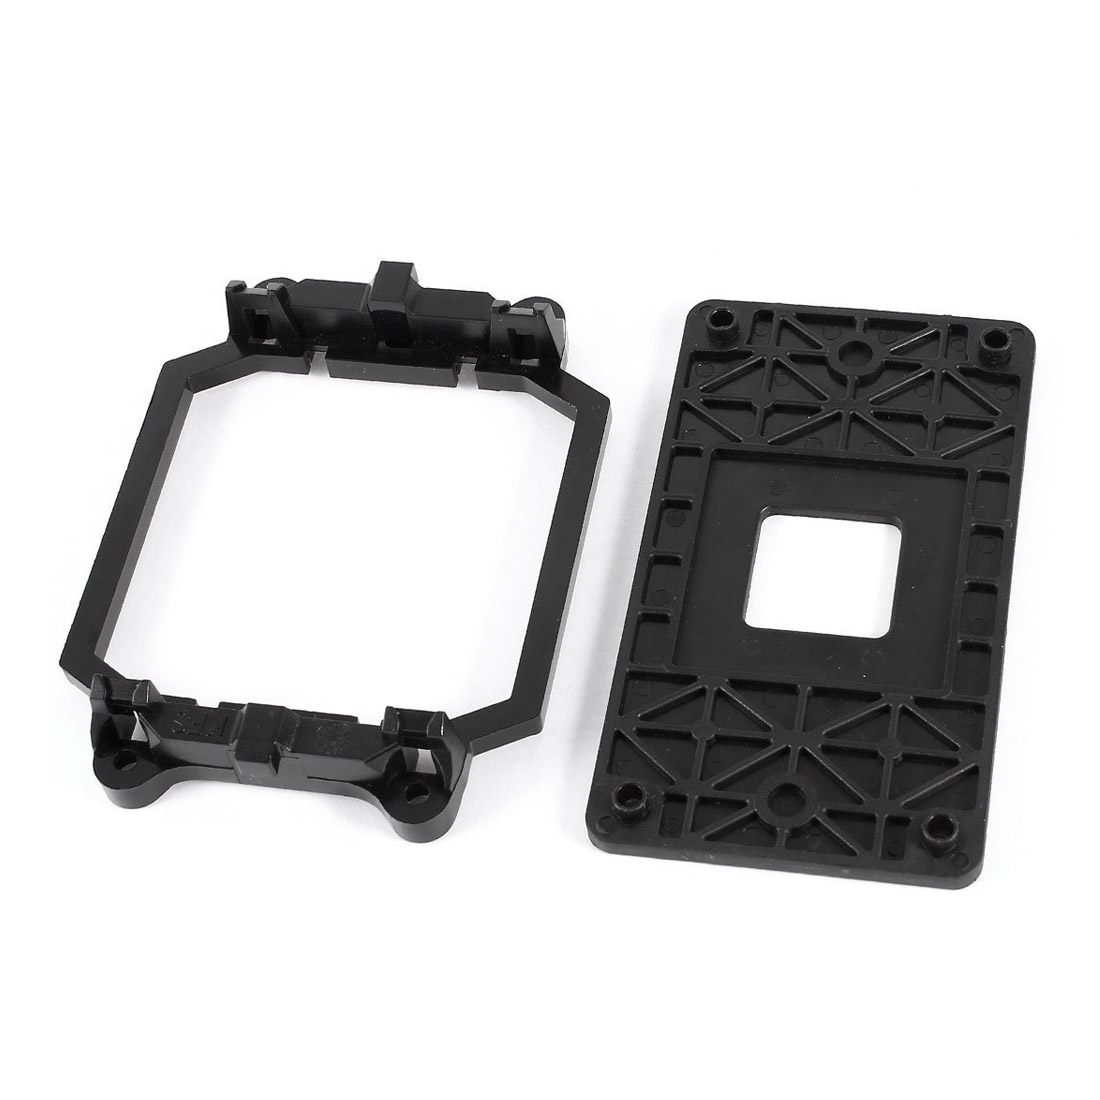 For AMD CPU Fan Base Black Plastic for AM2 AM3 Socket